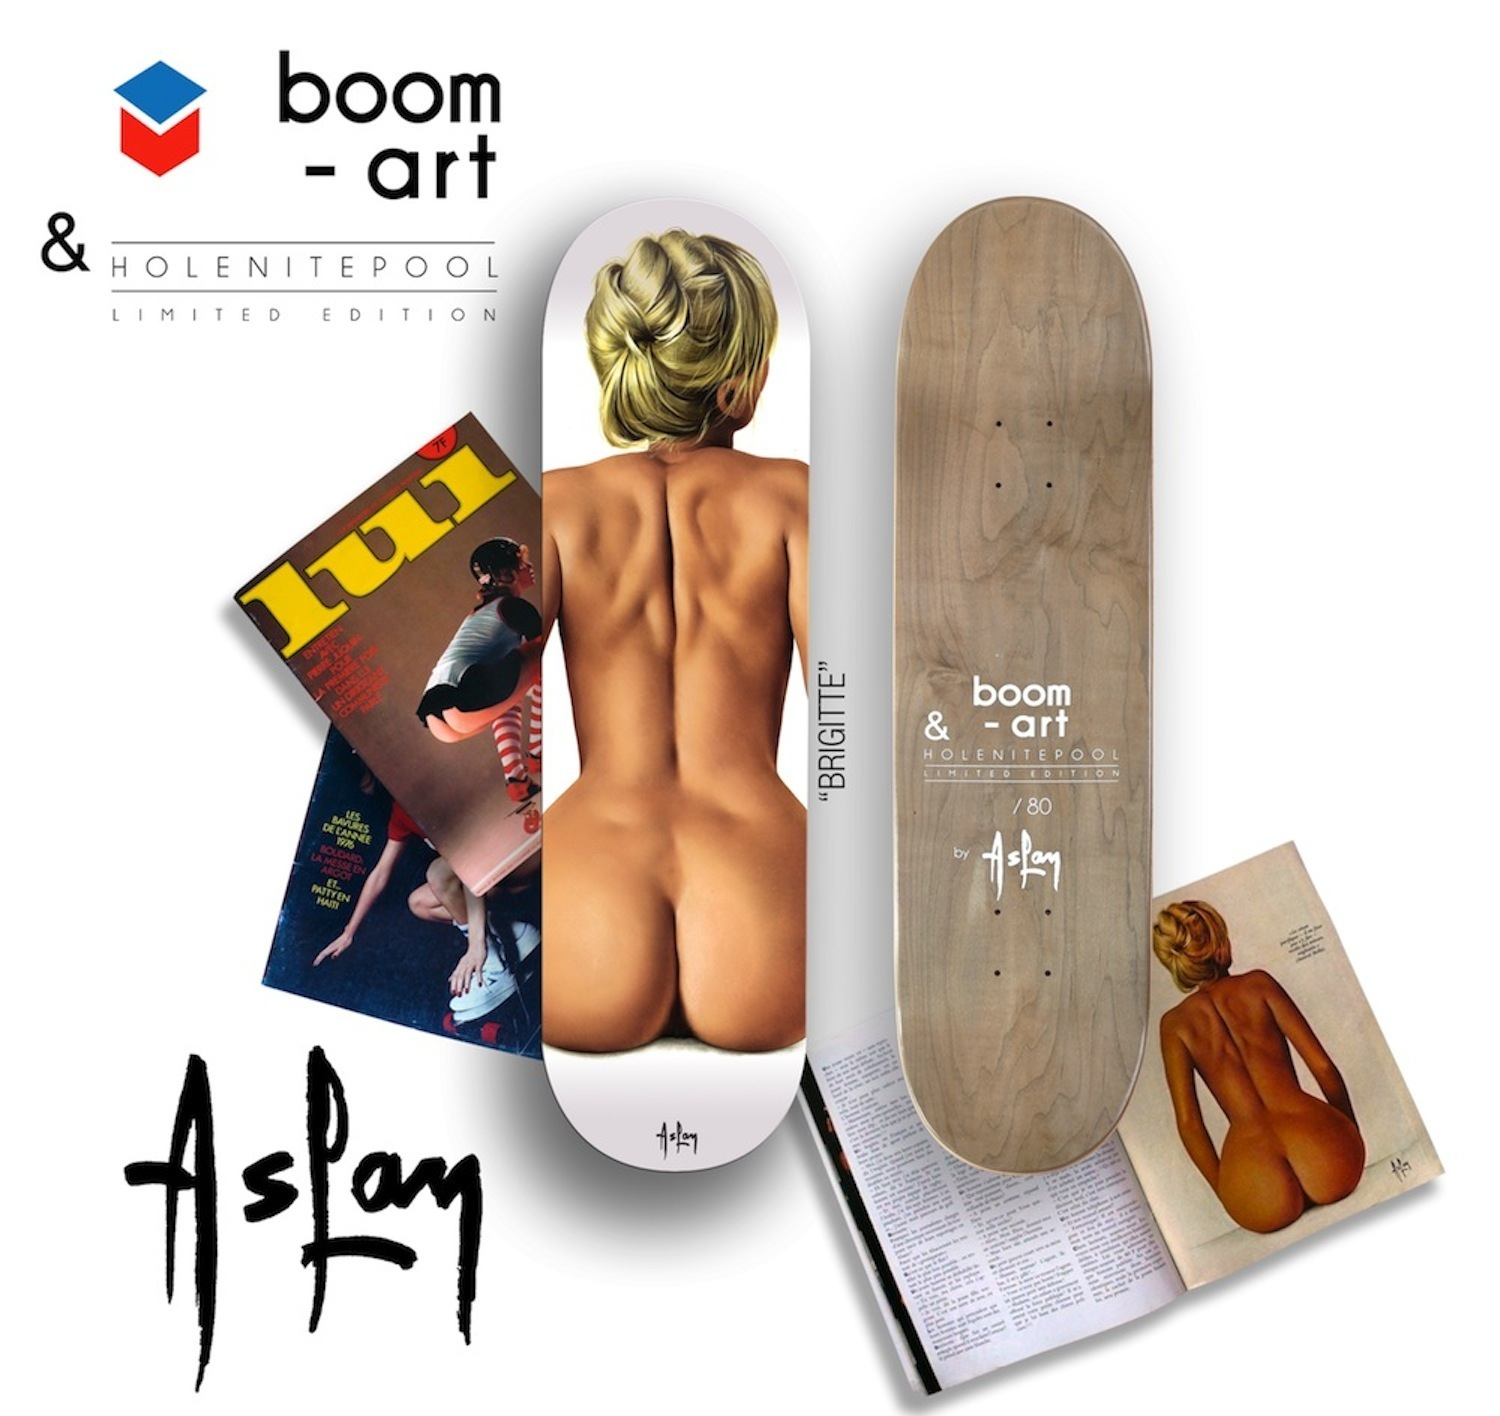 Aslan's Pin-Up Skateboards: boomart_2_20120309_1172098348.jpg